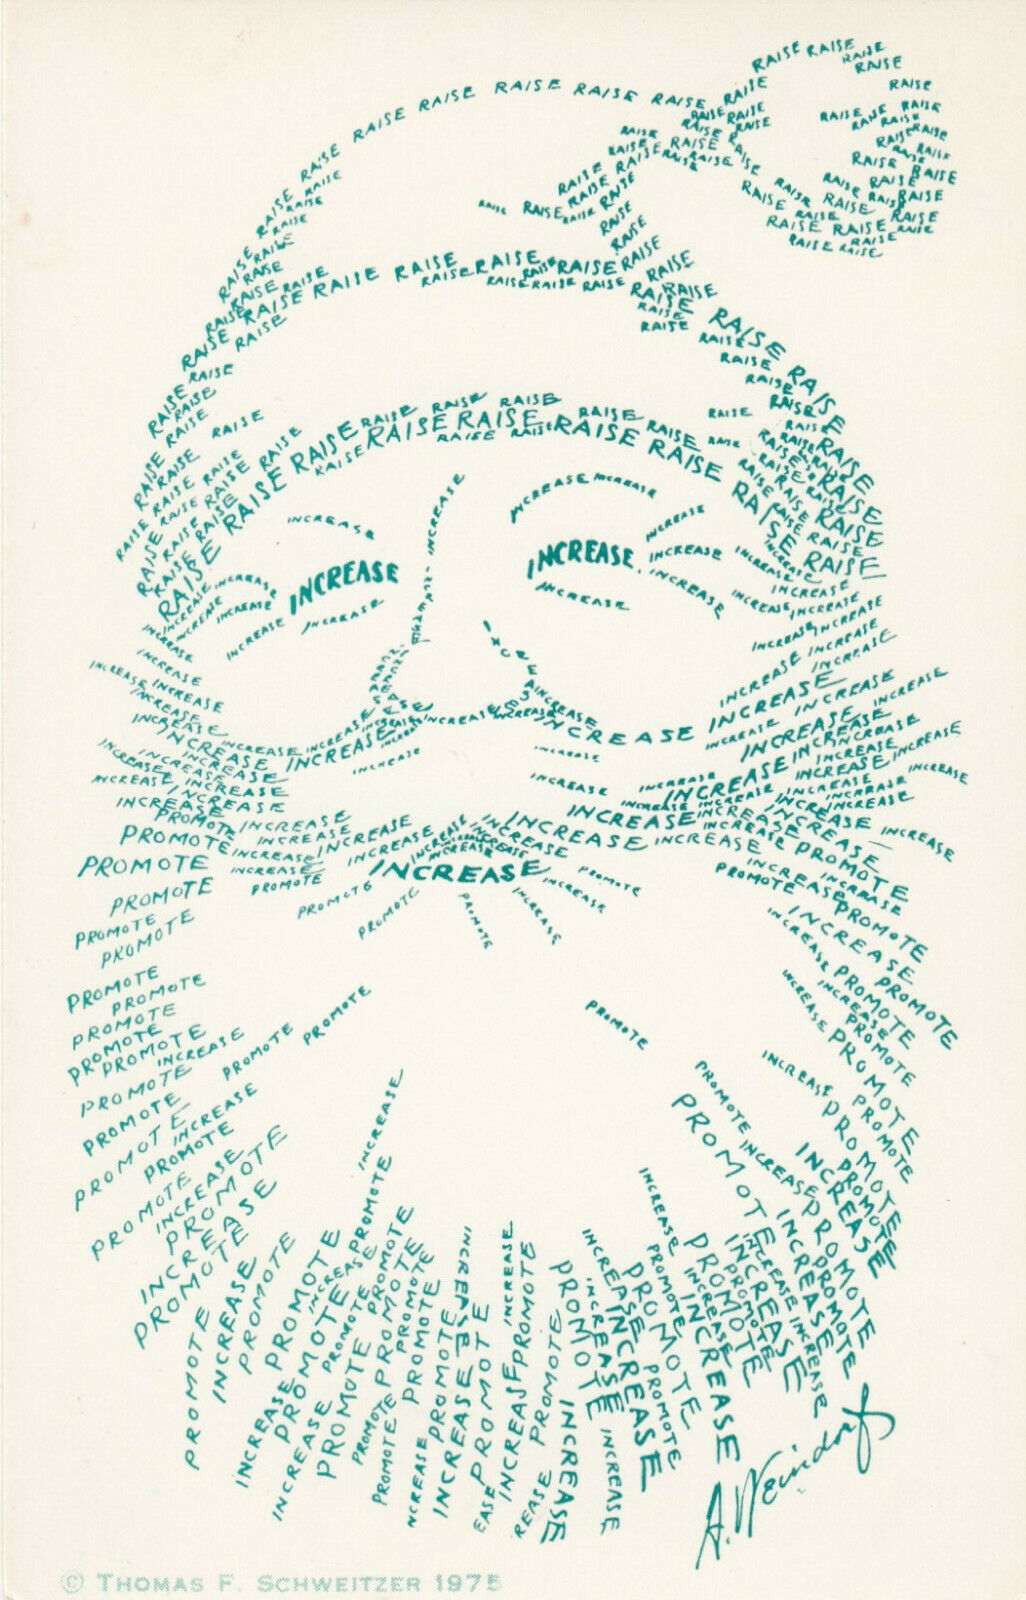 AS; Arthur WEINDORF, 1940-60s; Ecology Santa Claus